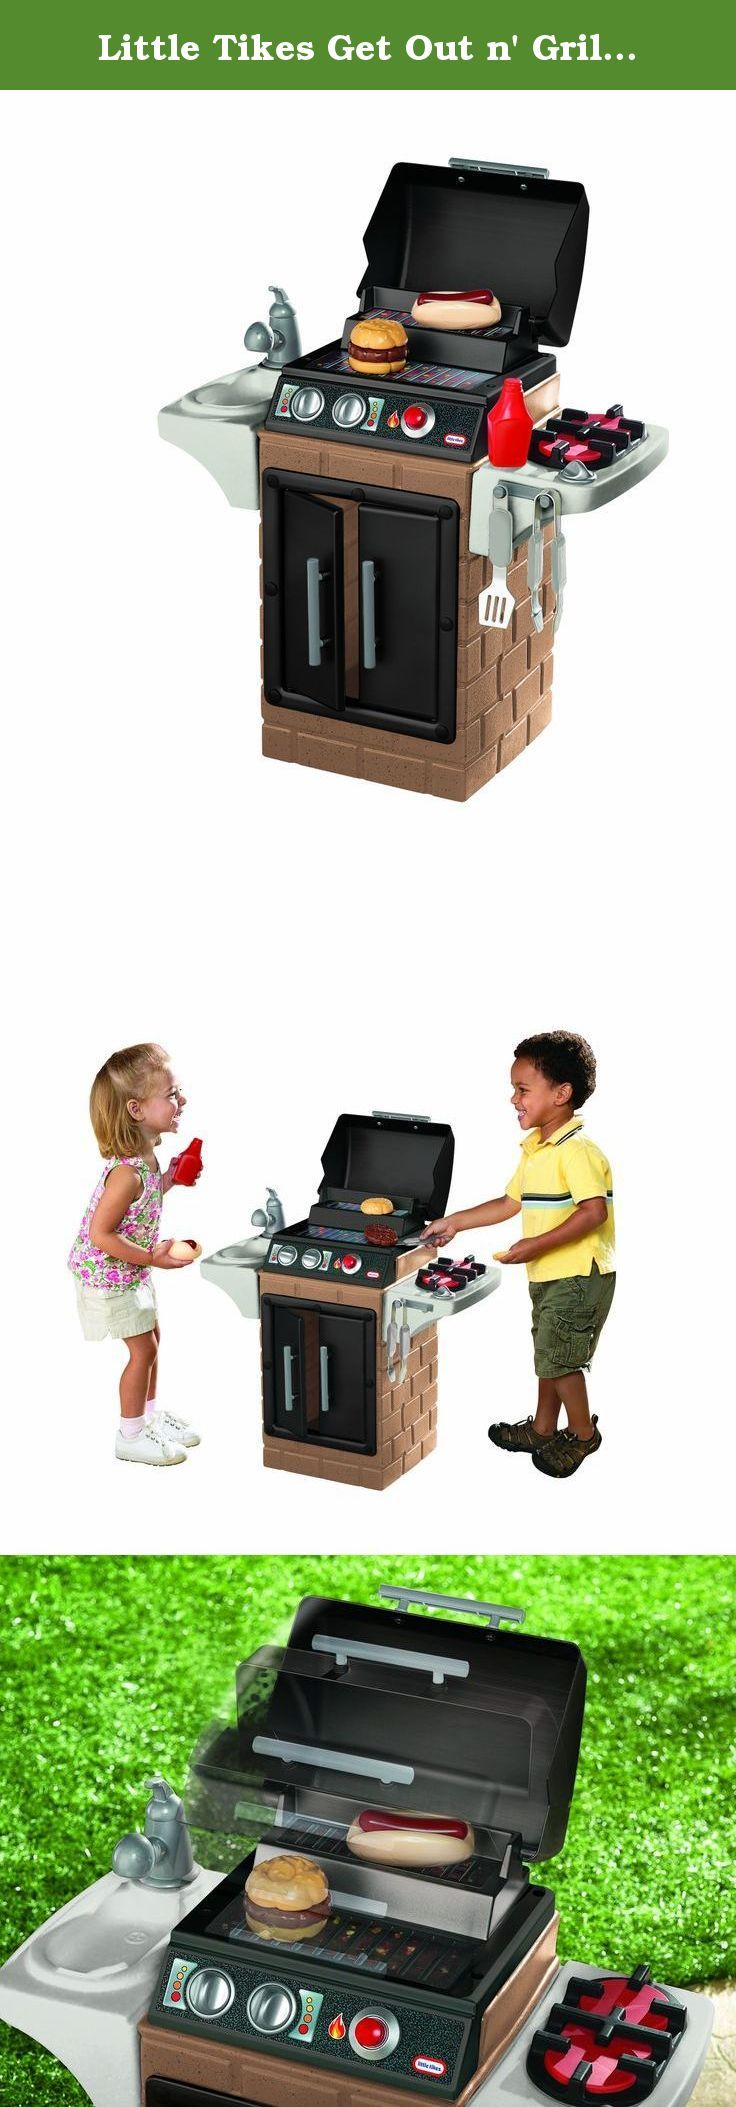 Little Tikes Get Out N Grill Kitchen Set – Kitchen Idea